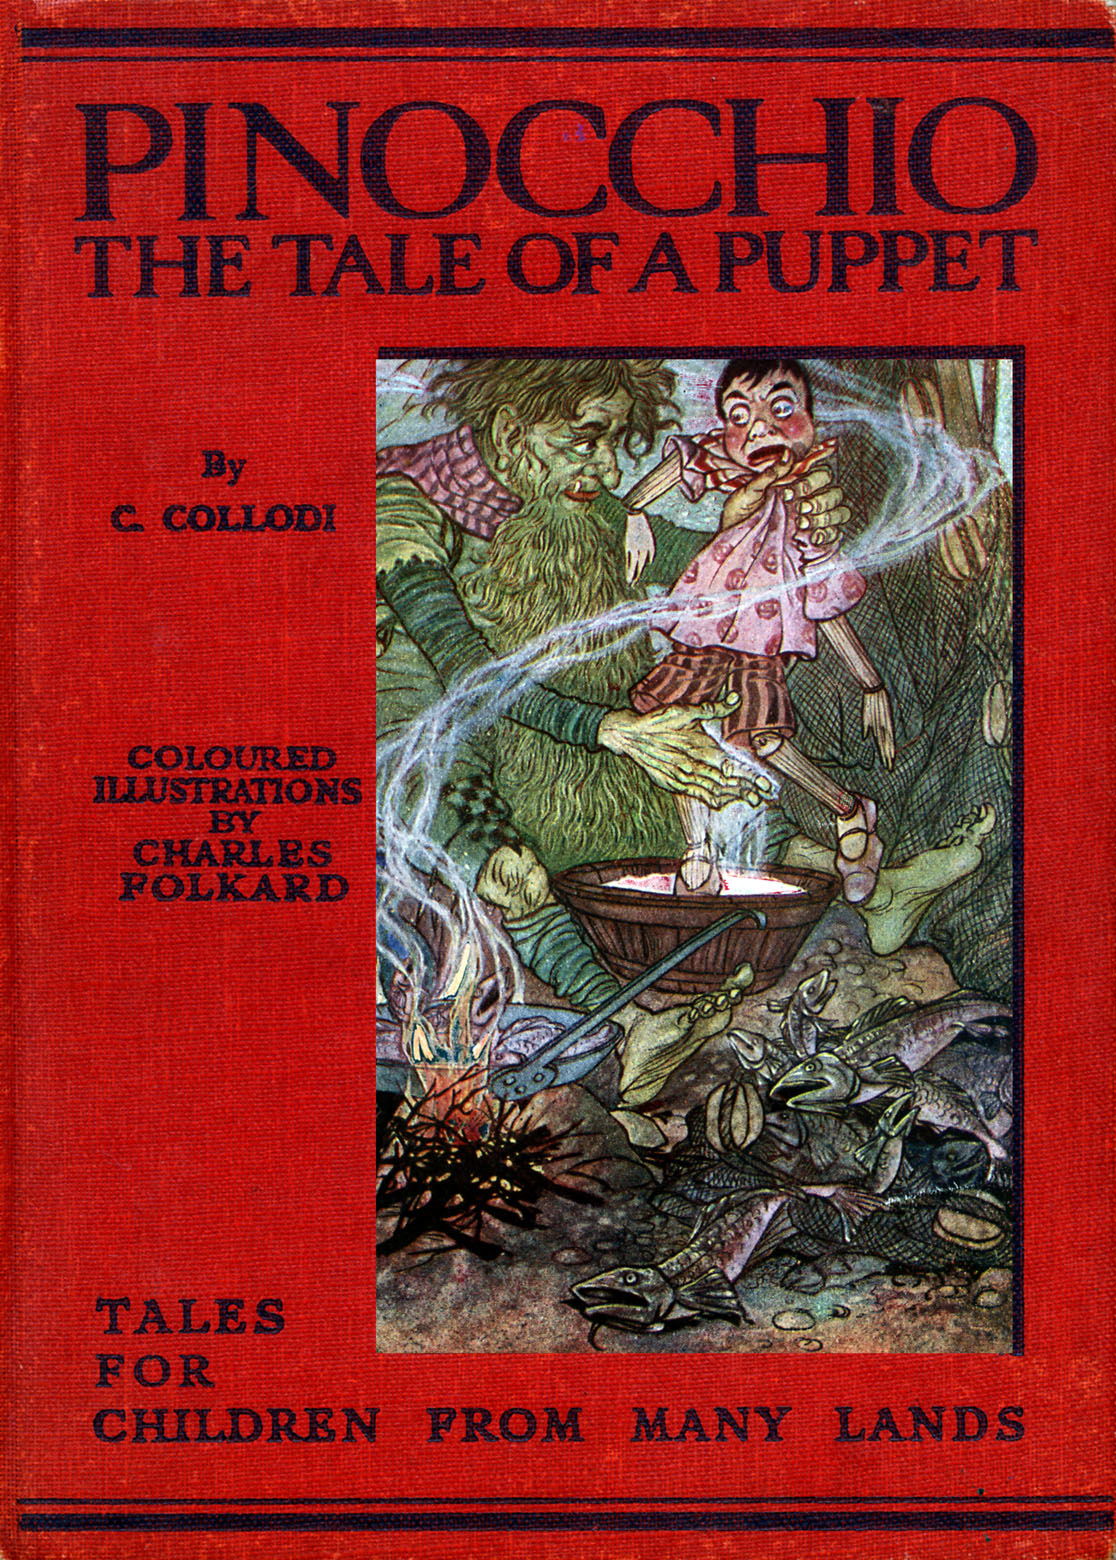 'Pinocchio: the Tale of a Puppet' by  C.Collodi (Carlo Lorenzini, 24 November 1826 – 26 October 1890), with coloured illustrations by Charles Folkard (6 April 1878- 26 February 1963), 1914. Cover illustration.  (Photo by Culture Club/Getty Images) *** Local Caption ***